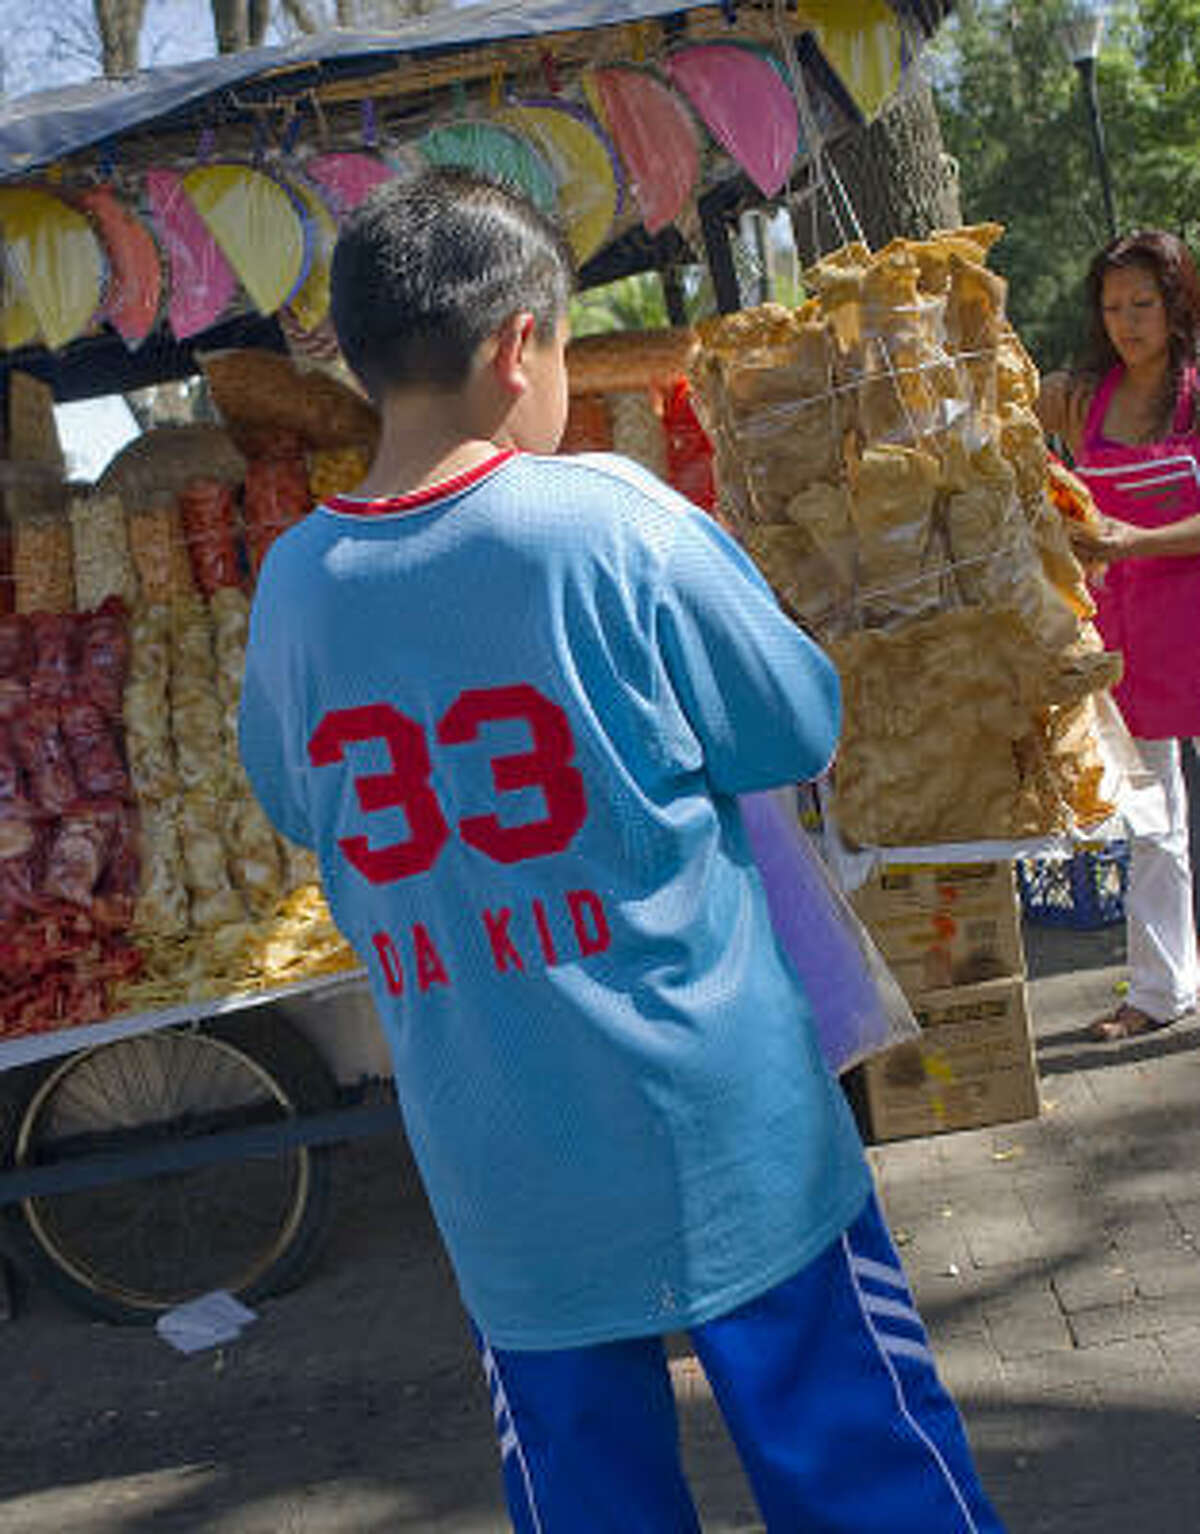 Across Mexico, sidewalk vendors with unhealthy offerings wait for students after classes let out.